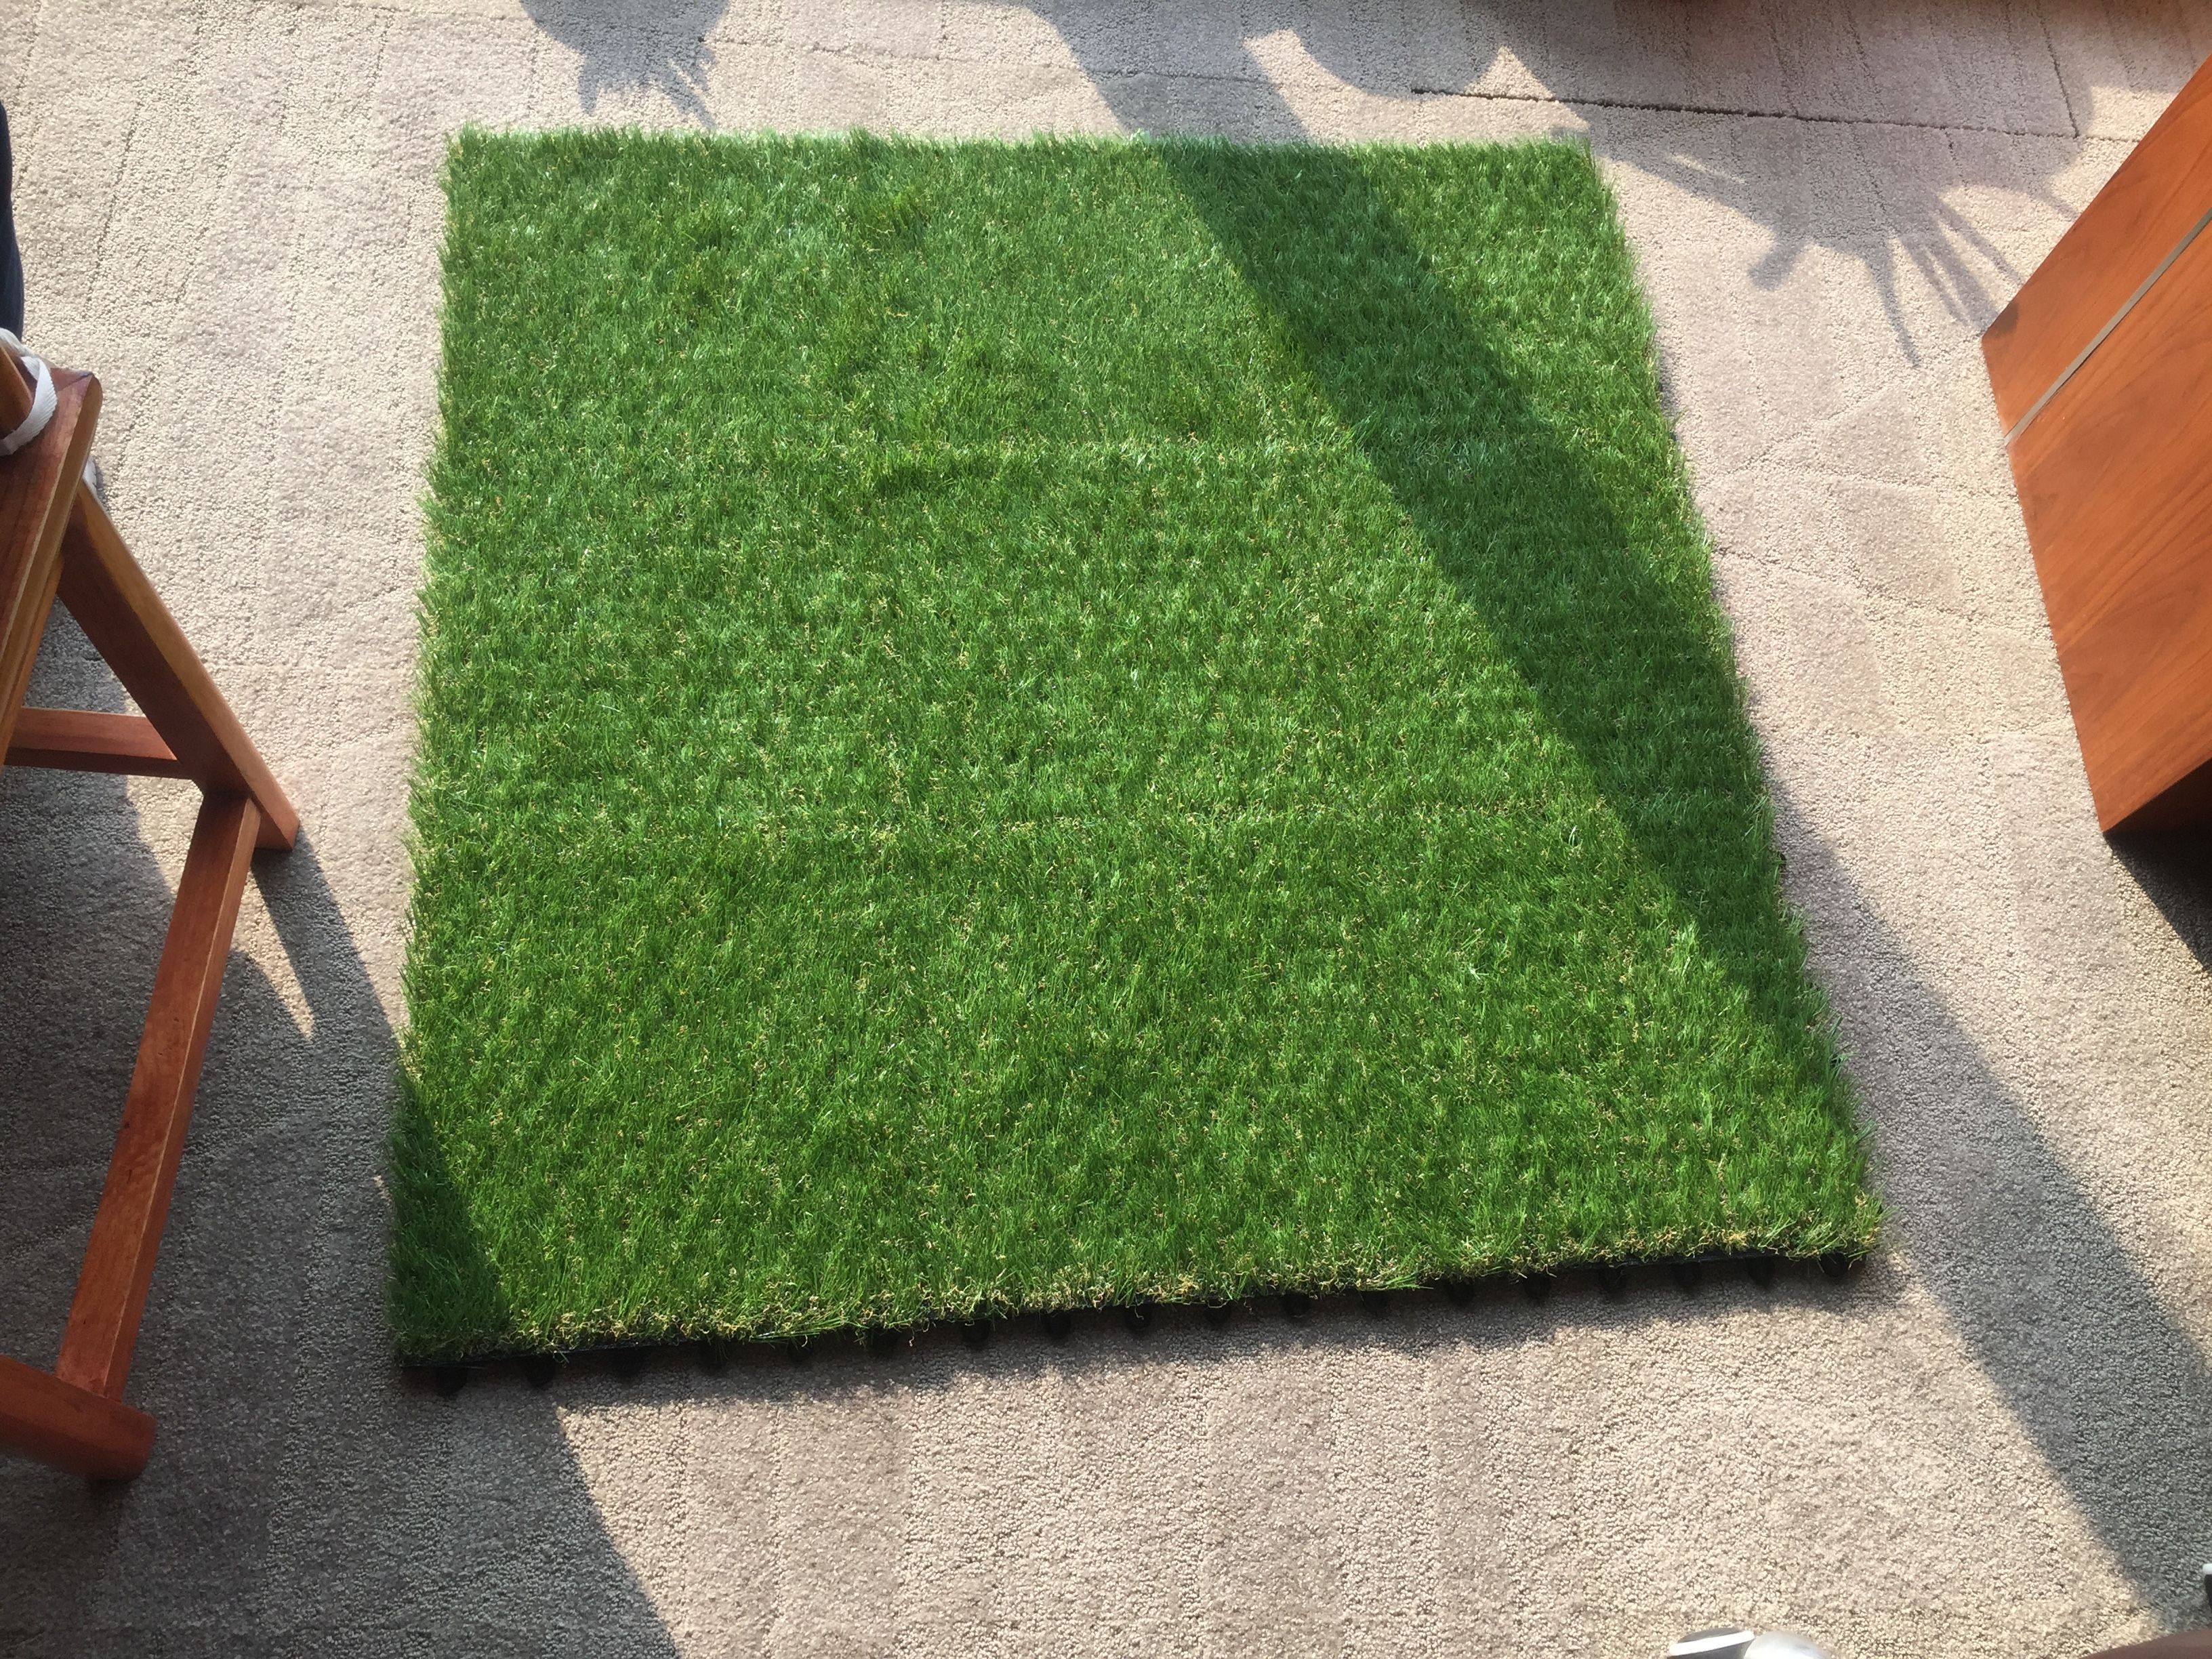 Synthetic grass interlocking tiles is easy to install by